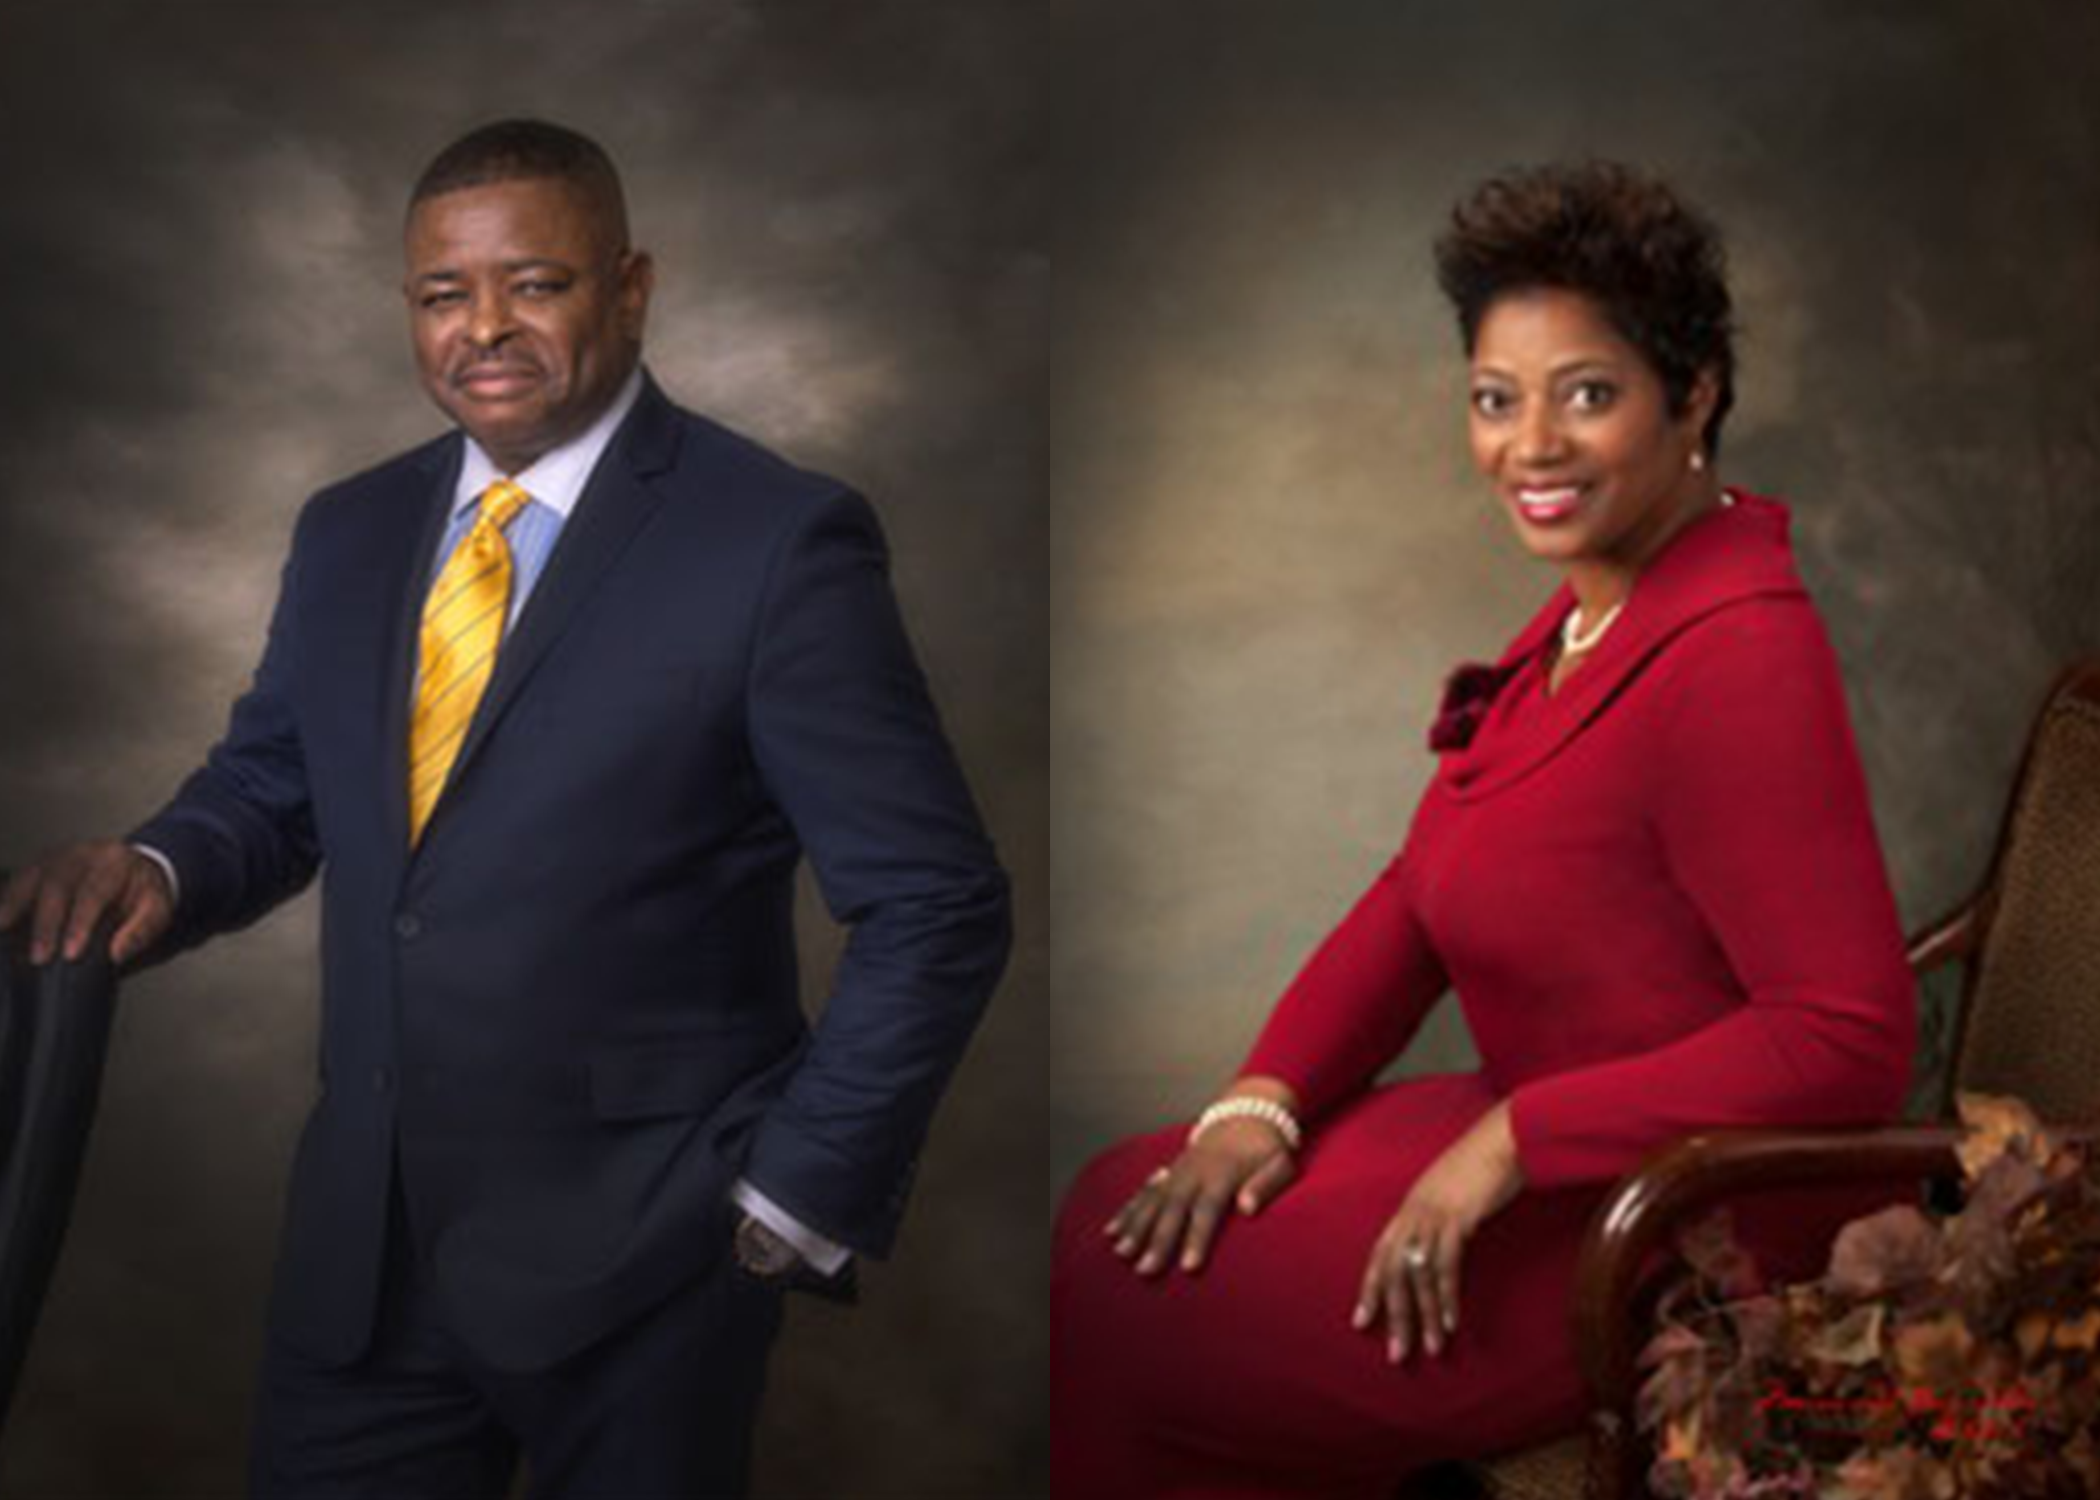 Jackson Municipal Airport Authority Board of Commissioners Elect Martin and Harris to Lead in Fiscal Year 2021